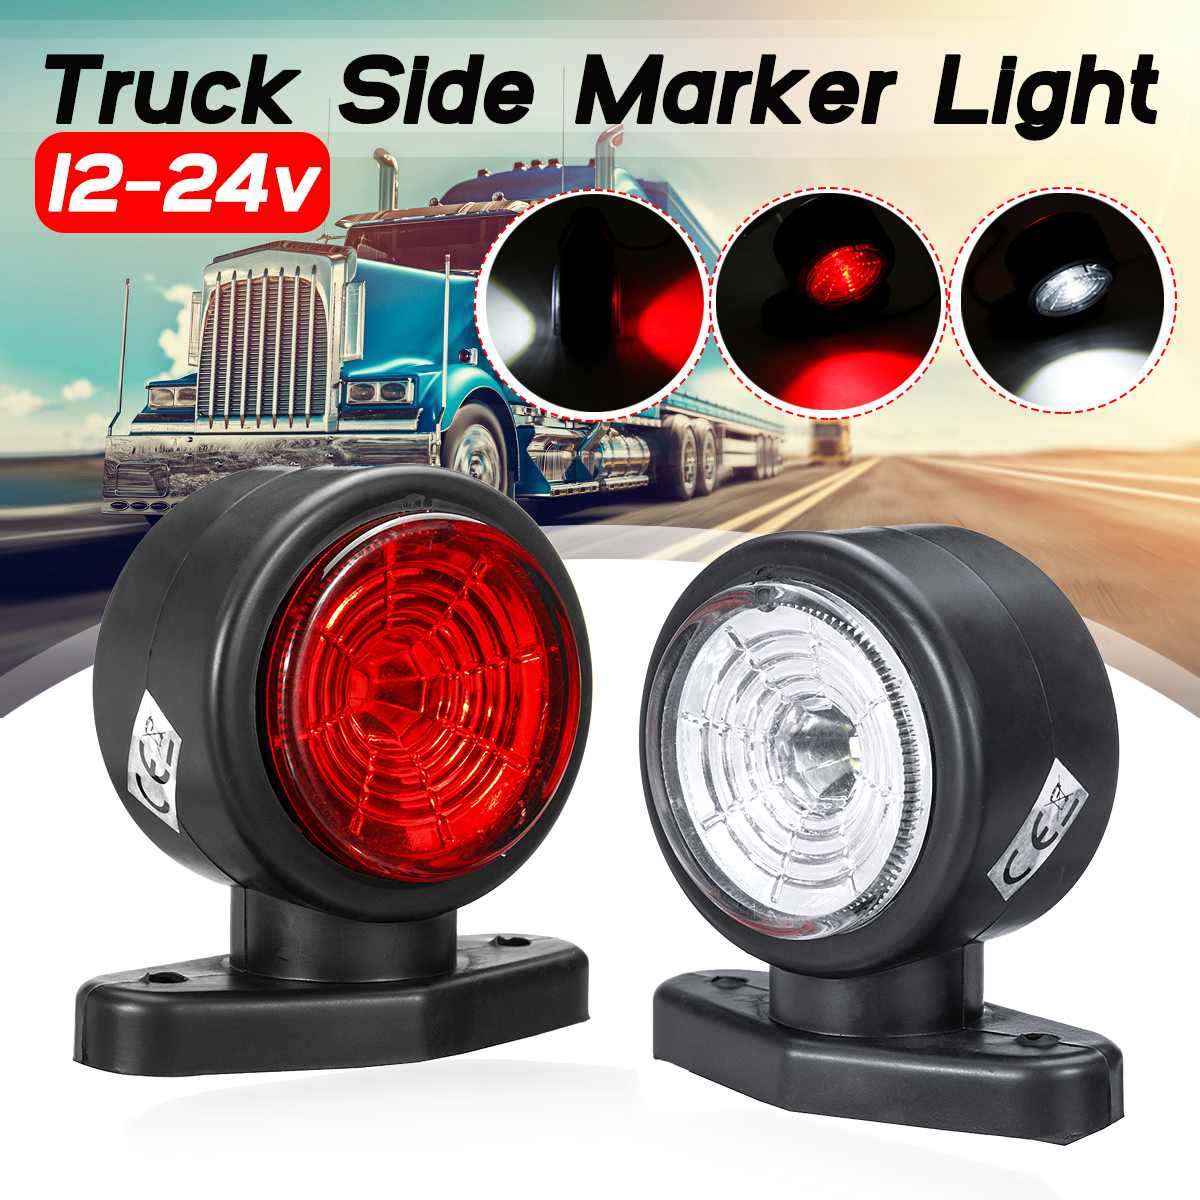 12 - 24v LED Universal Car Truck Side Marker Light Lights Indicator Signal Lamp Red White For Camper Trailer Lorry RV